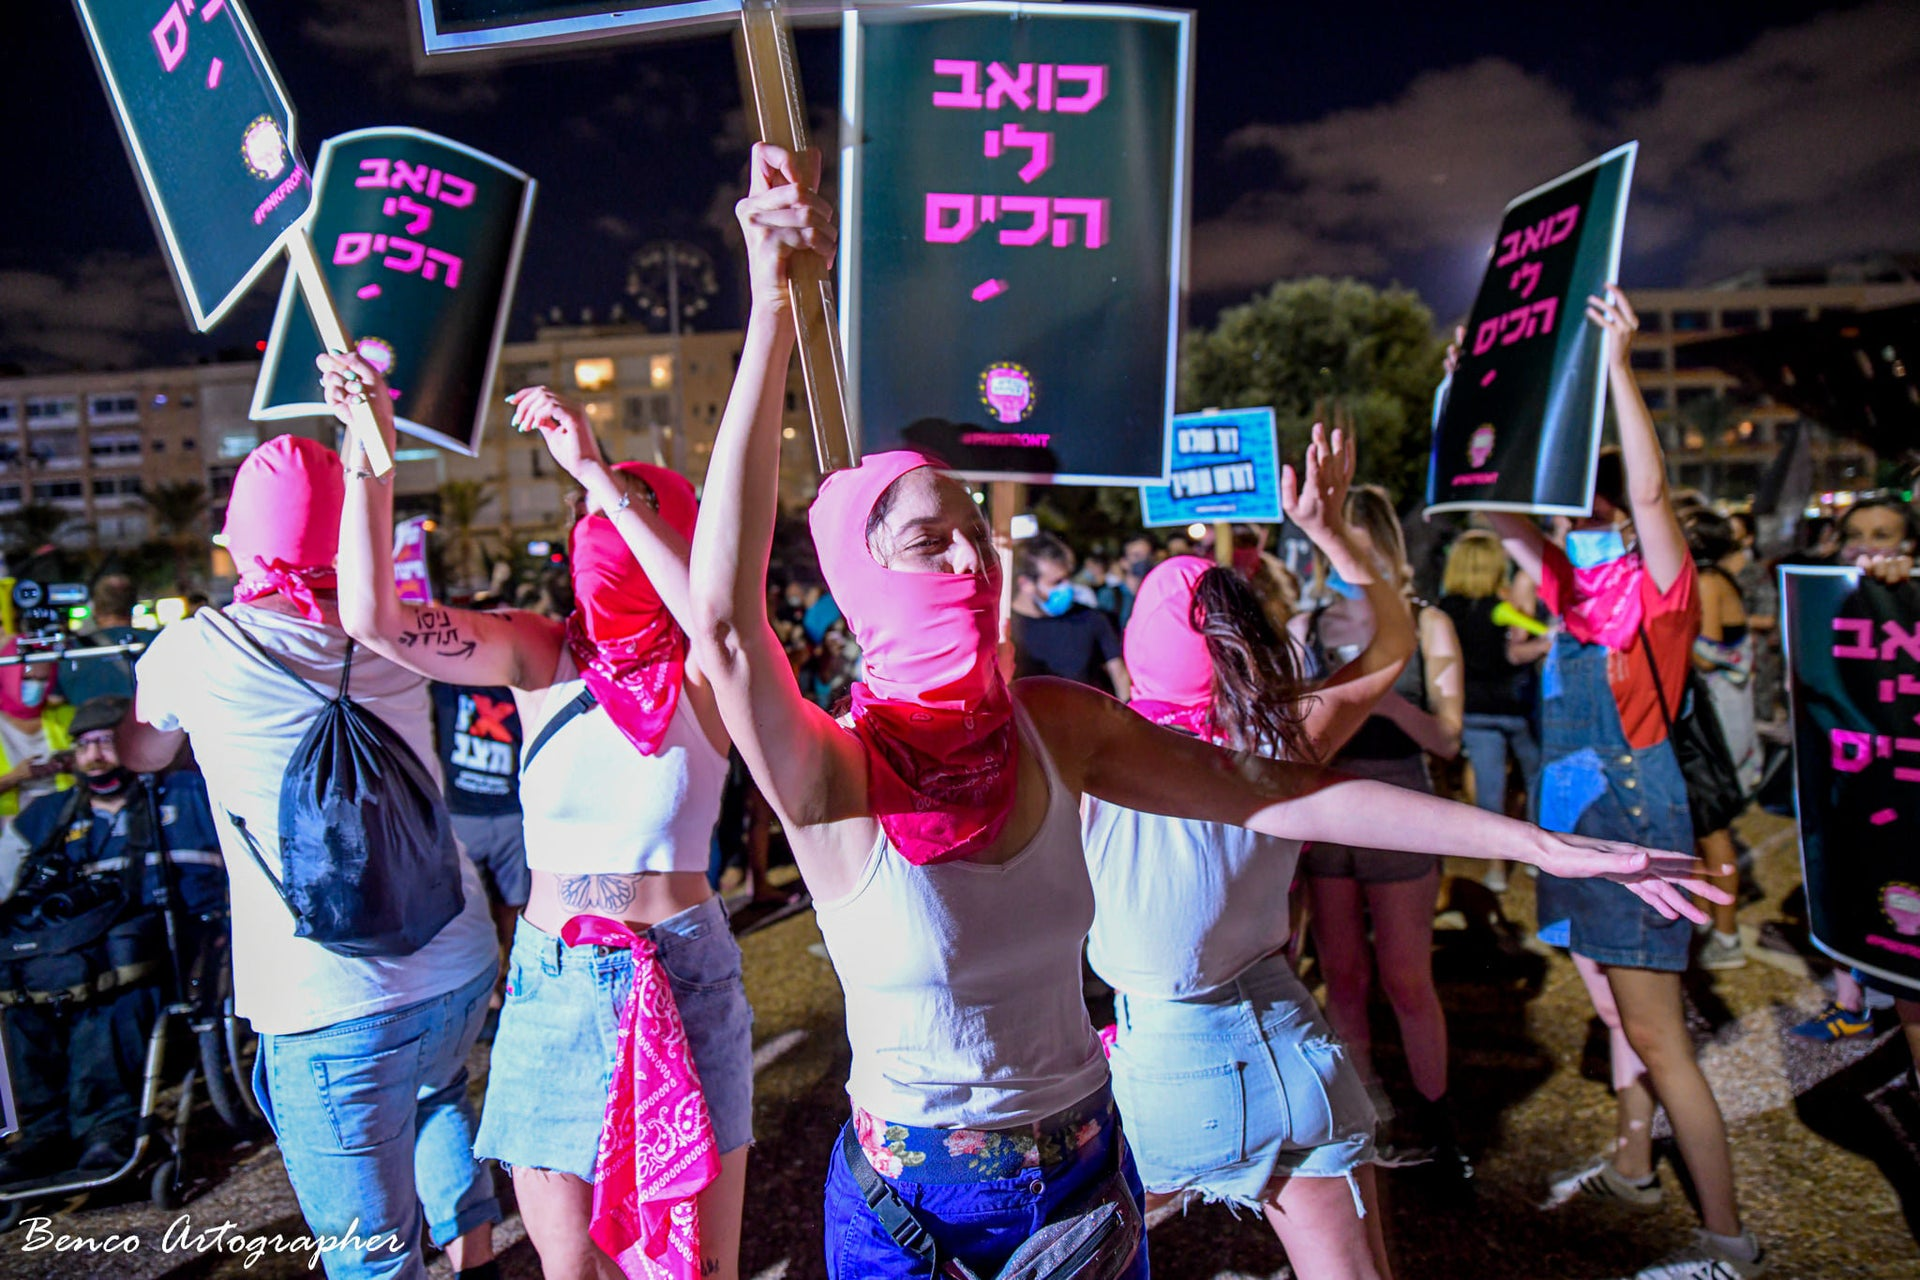 'Corruption is Suffocating the People,' a Pink Front performance, Rabin Square, Tel Aviv, August 2020.